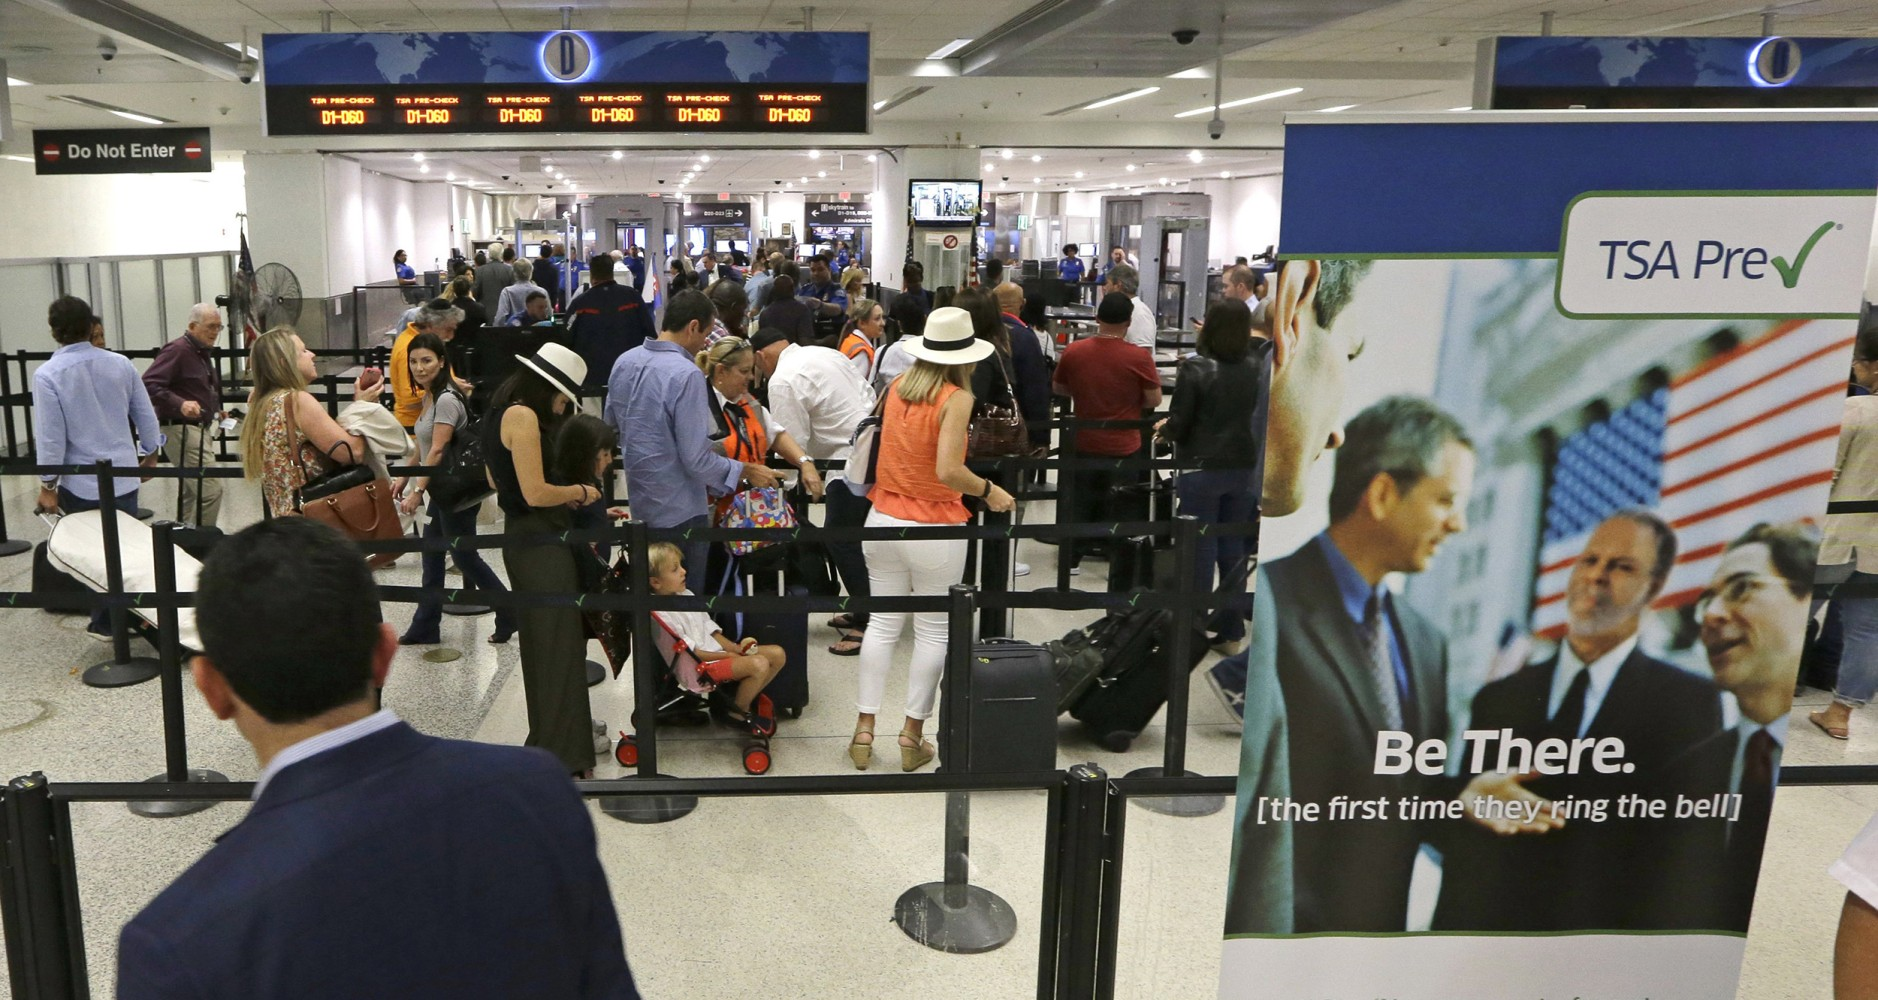 improving tsa security process Tsa urged to improve screening process for transgender passengers tsa urged to improve screening process for while the transportation security.